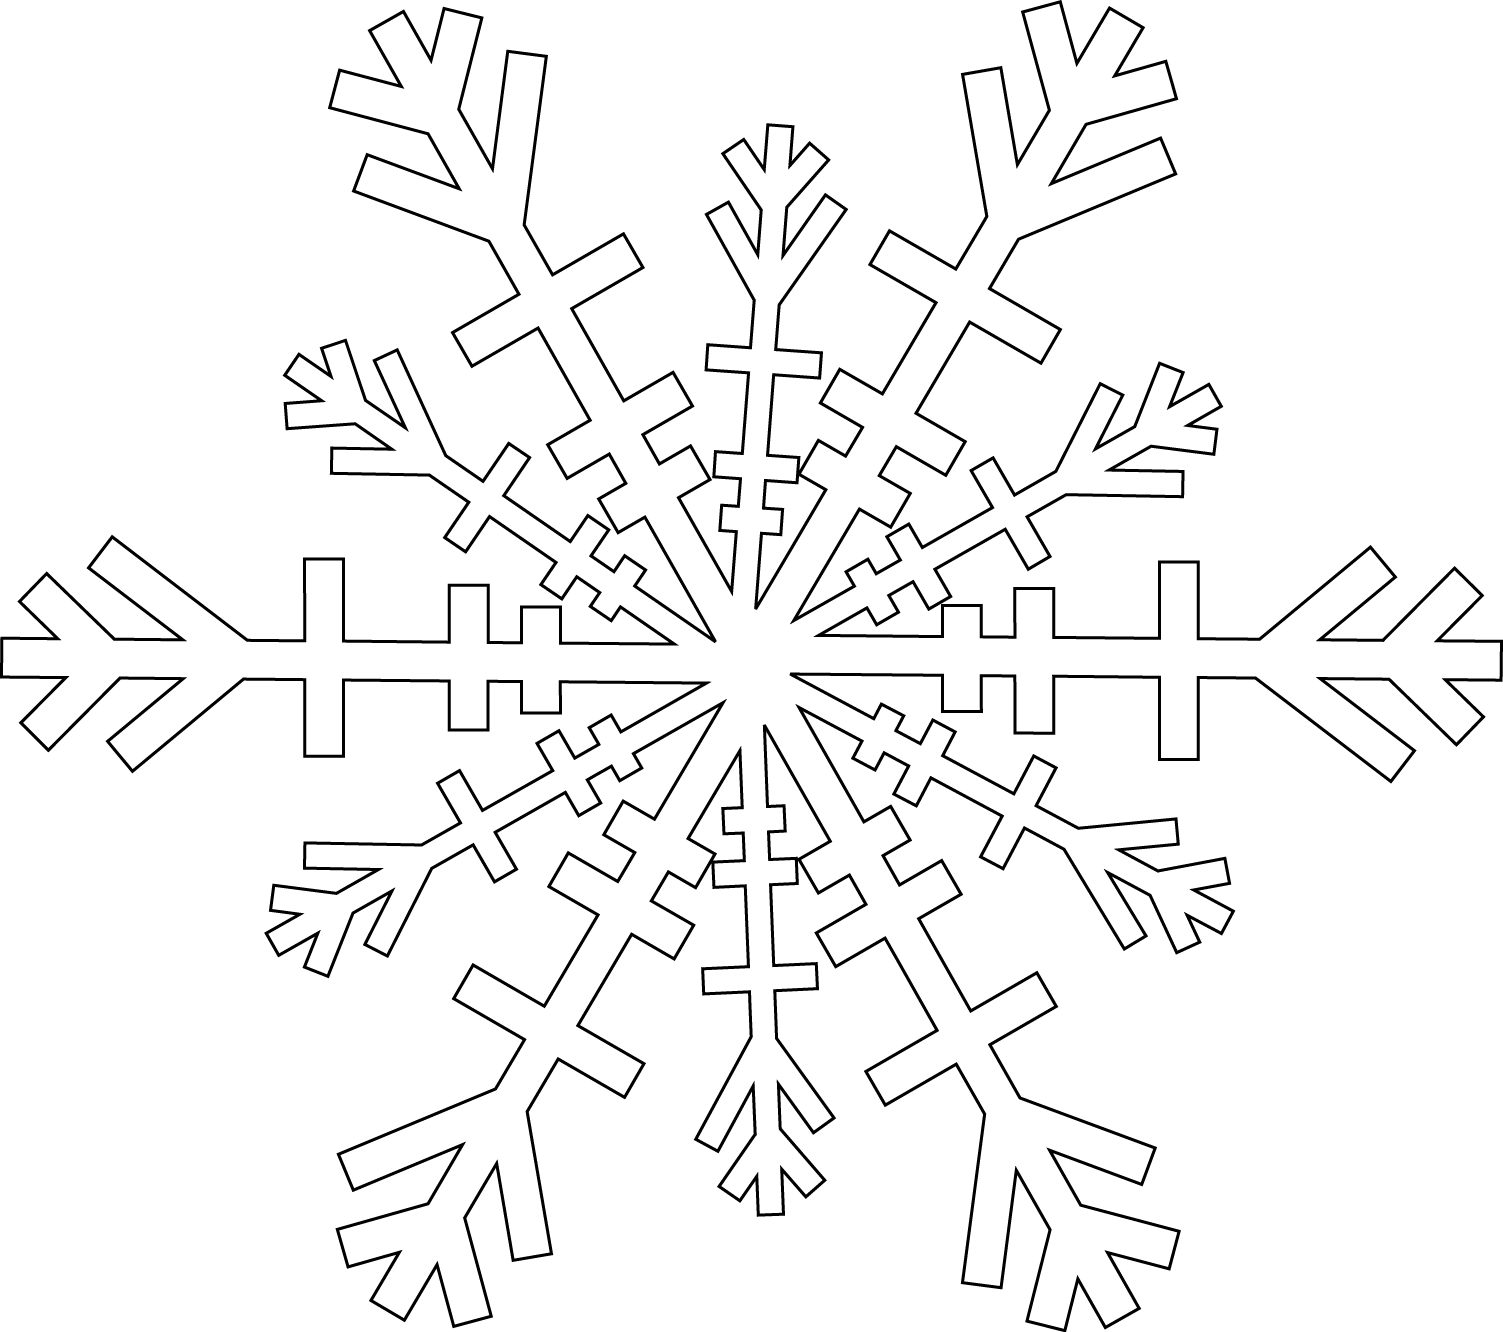 Distressed snowflake clipart black and white png library snow_flake2.png (1503×1332) | Digi Stamp | Pinterest png library